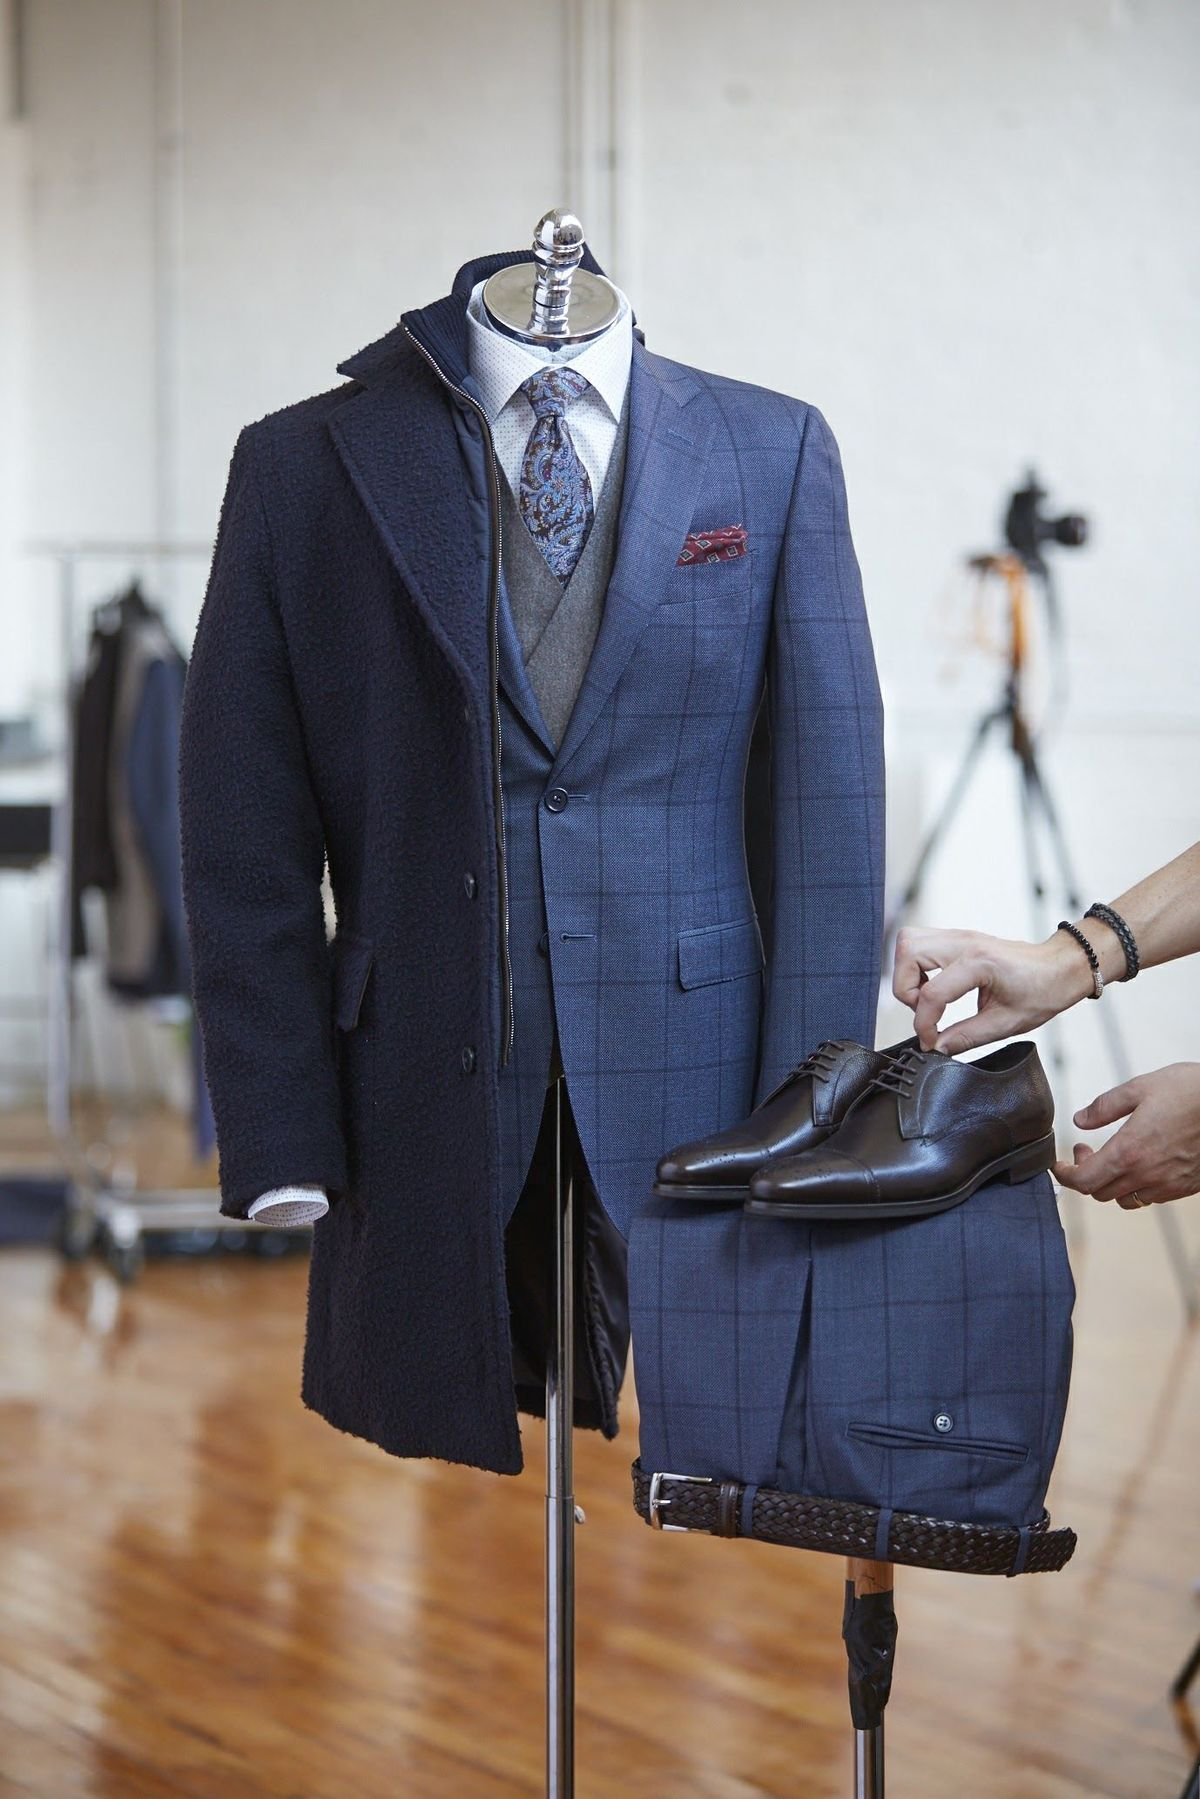 The Chief Executive Officer - Lalonde's Boutique